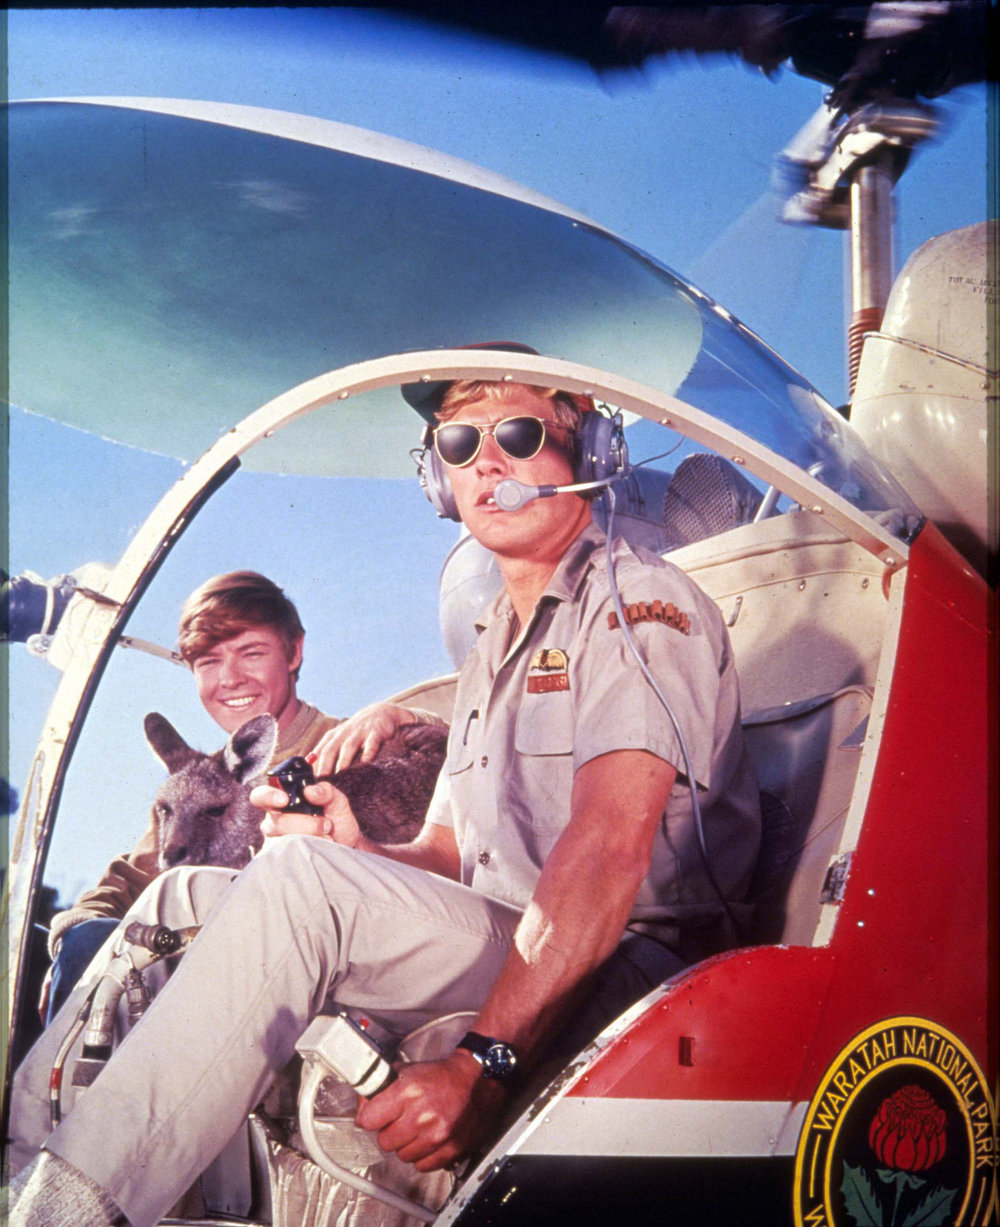 Skippy takes to the skies with Mark (Ken James) and pilot Jerry (Tony Bonner)